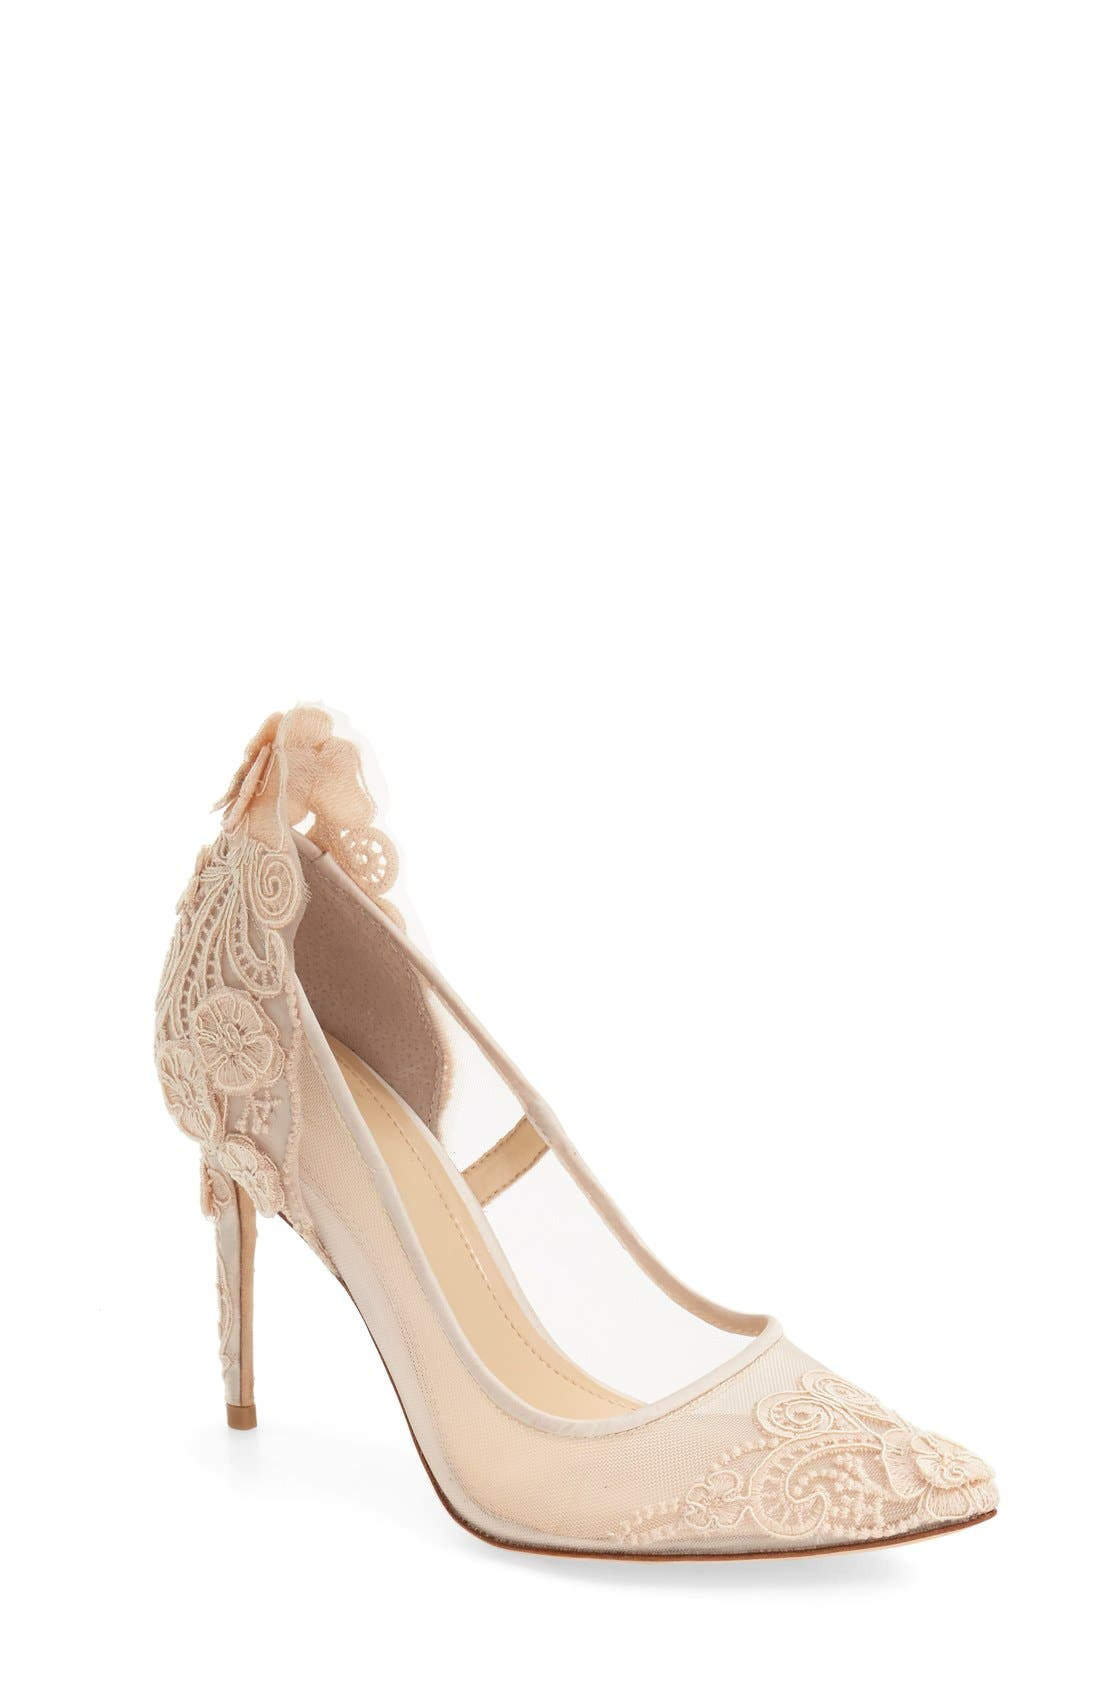 Main Image - Imagine by Vince Camuto 'Ophelia' Pointy Toe Pump (Women)